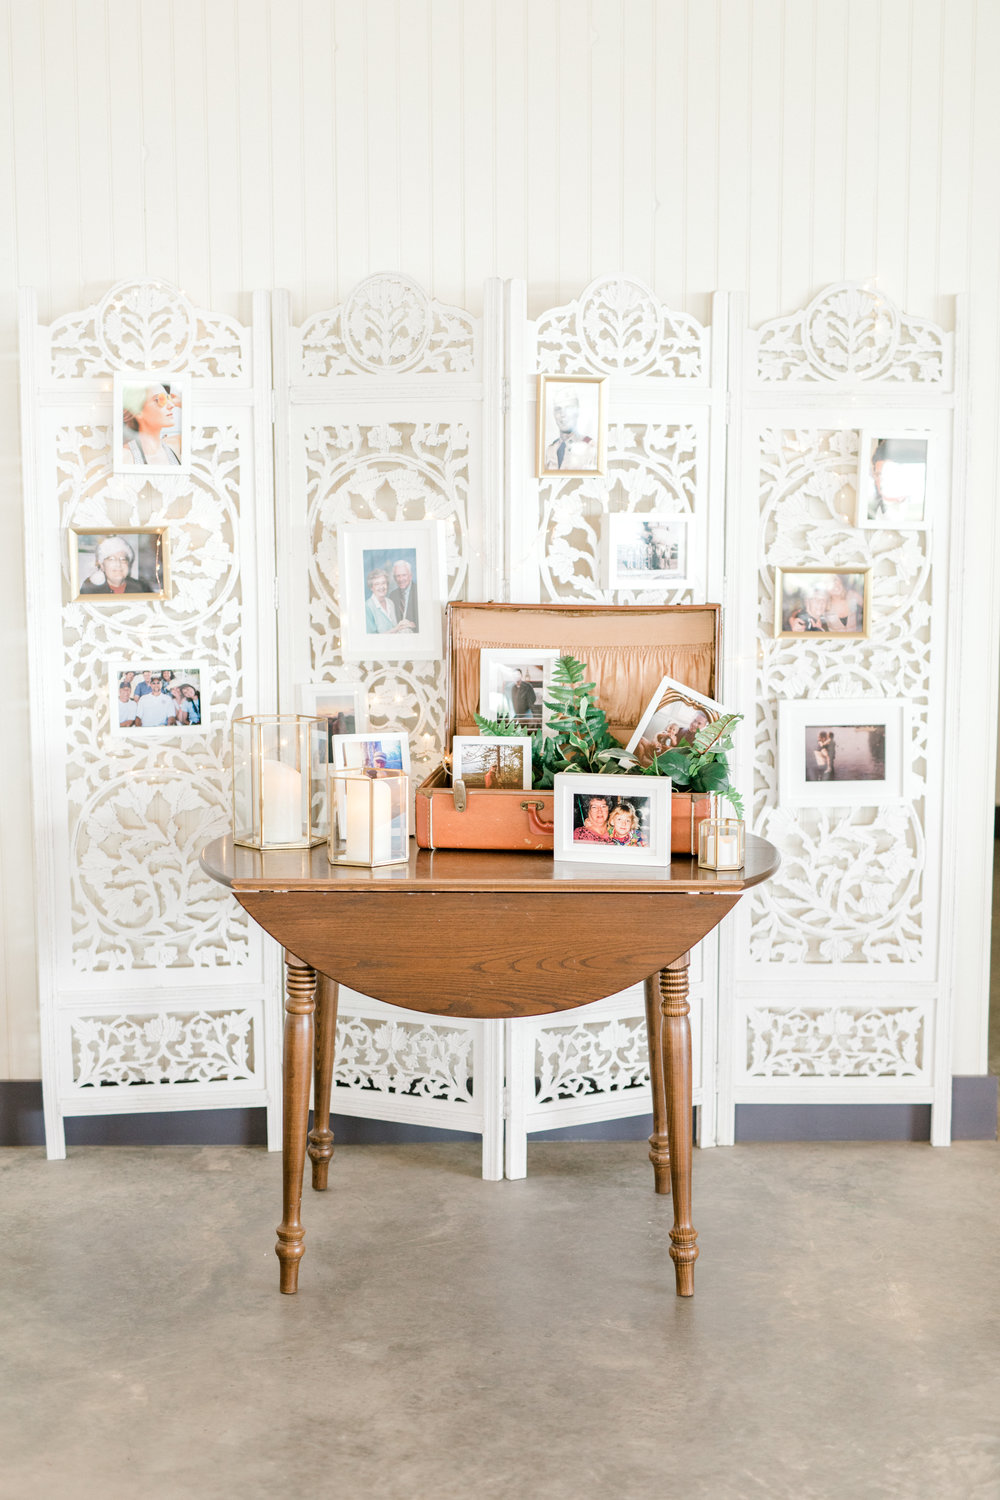 haley-richter-photography-vintage-memory-wall-summer-winery-vineyard-wedding-trunk-photos-frames-white-divider-wall-display-ecclectic